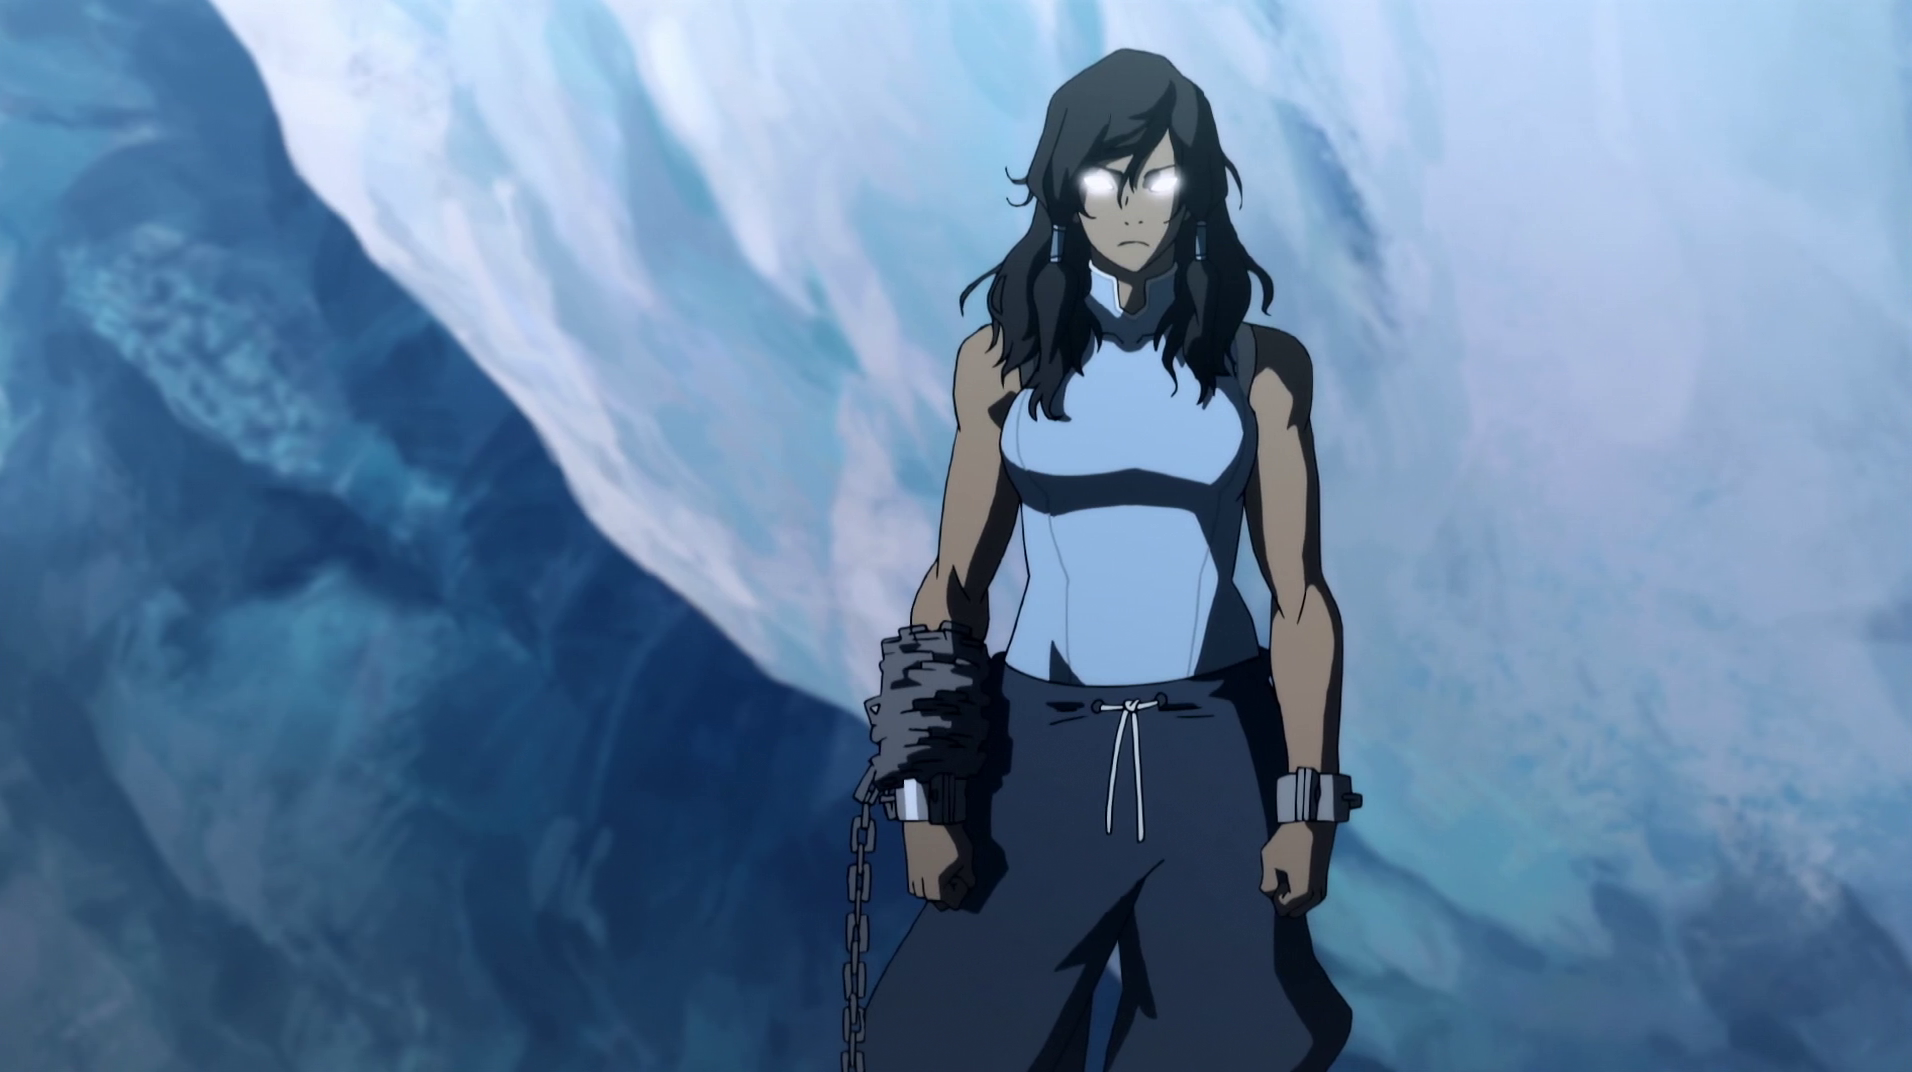 korra in the avatar state in season 2 of legend of korra